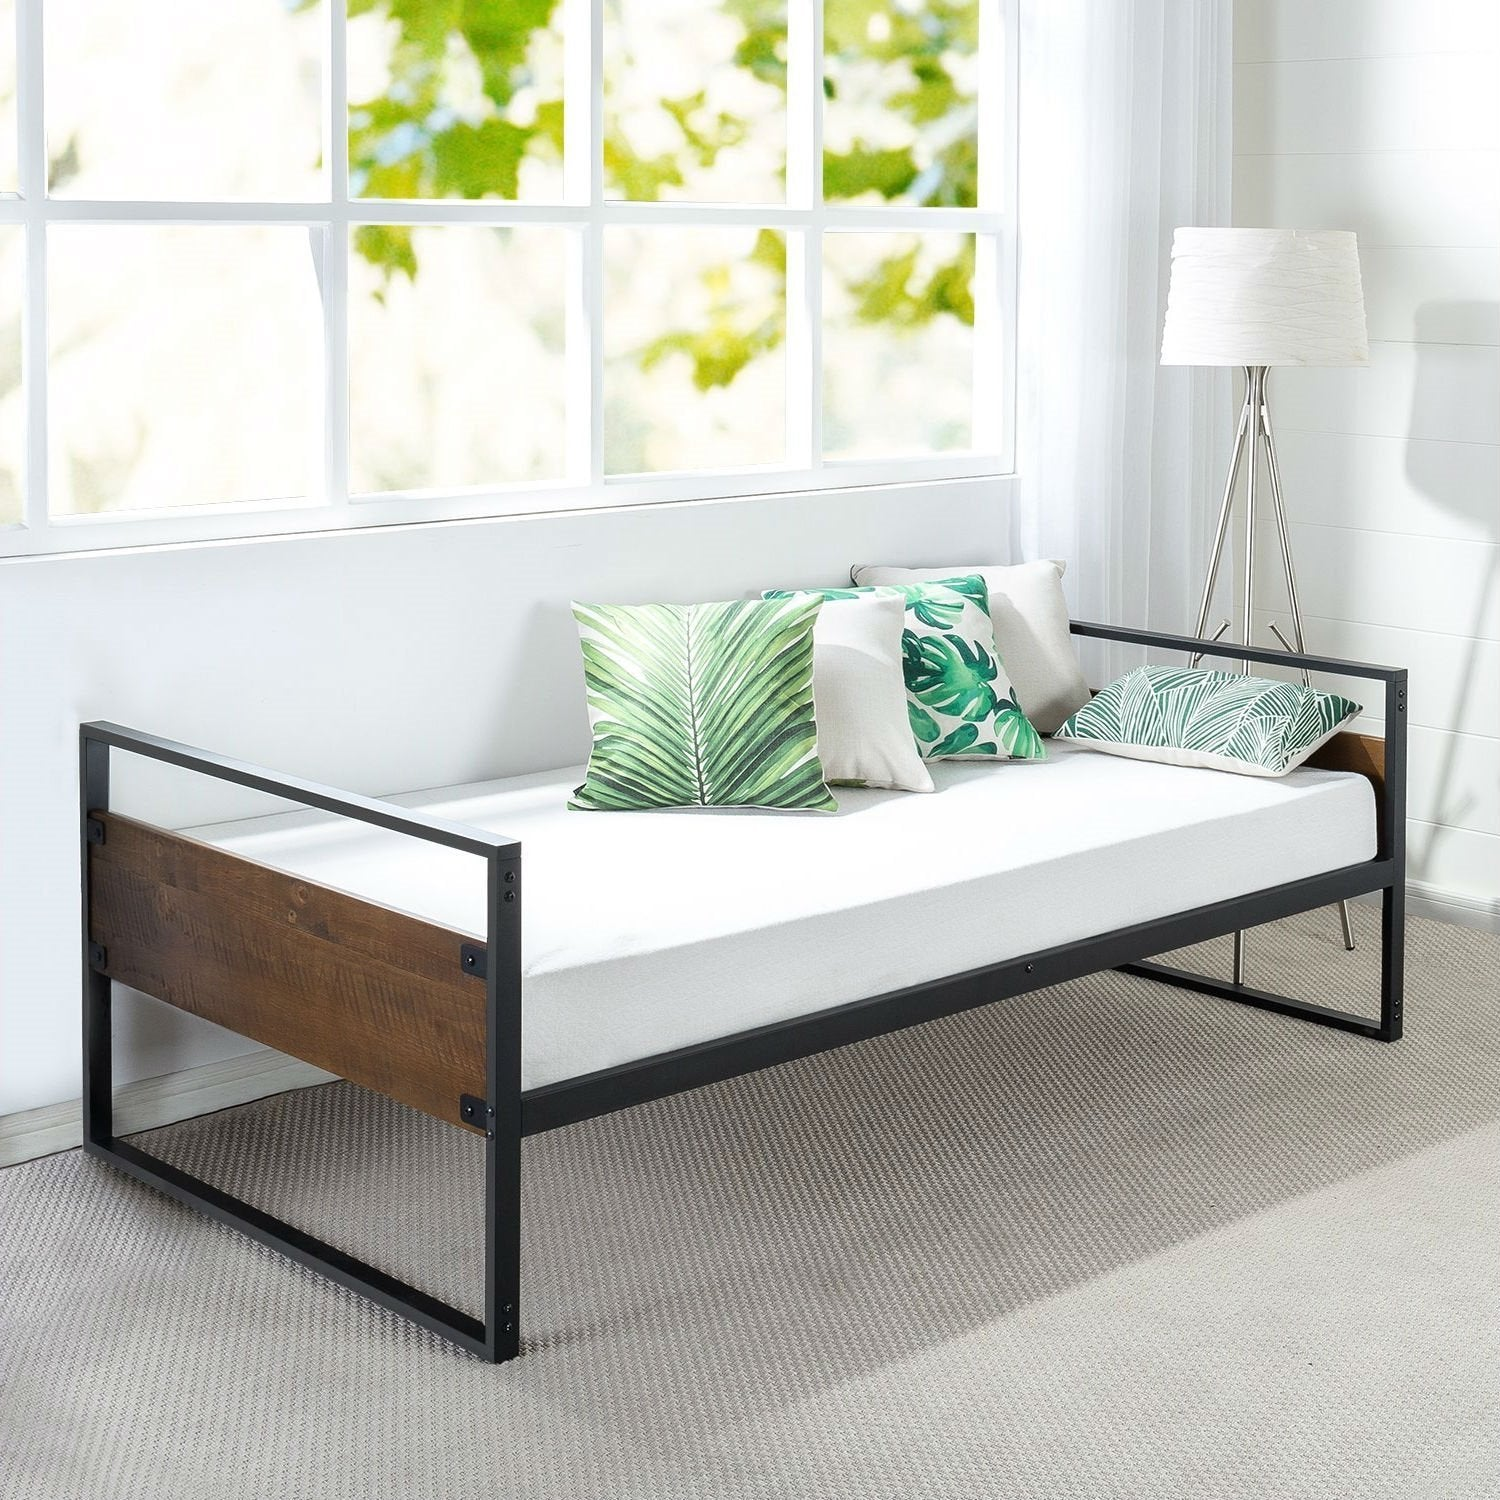 Twin Modern Wood Metal Daybed Frame with Steel Slats.